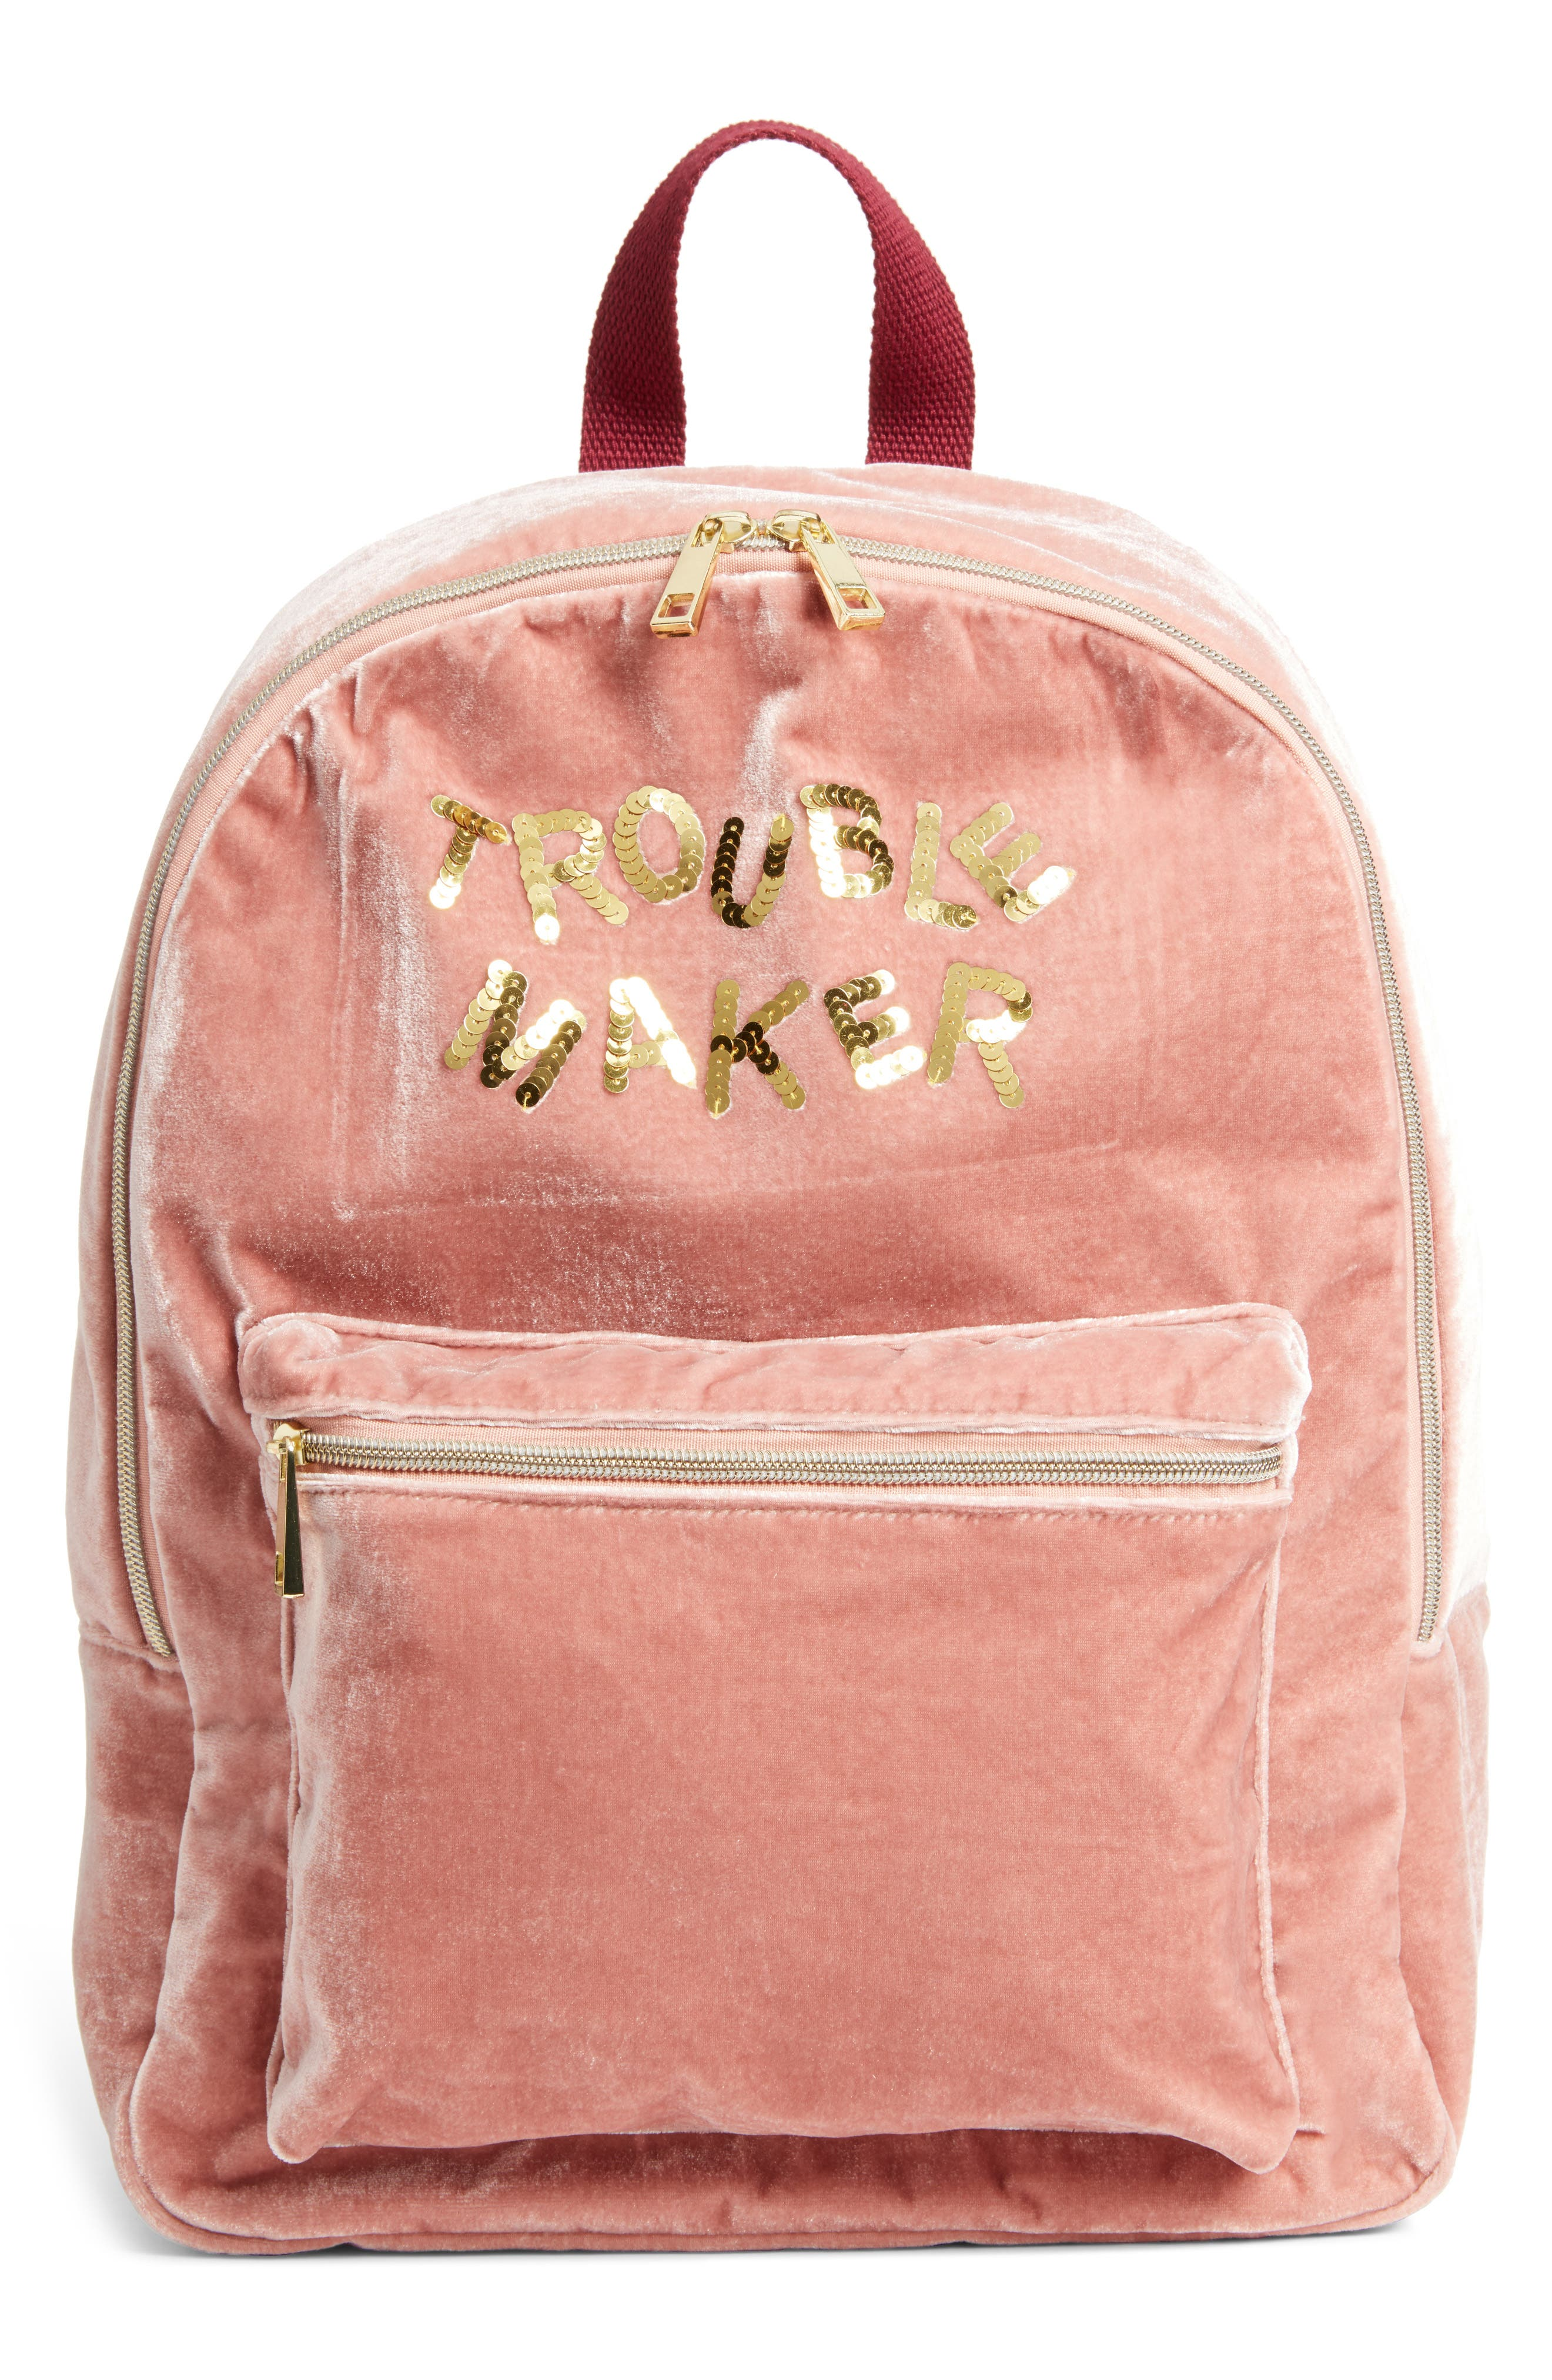 Trouble Maker Backpack,                         Main,                         color, 650